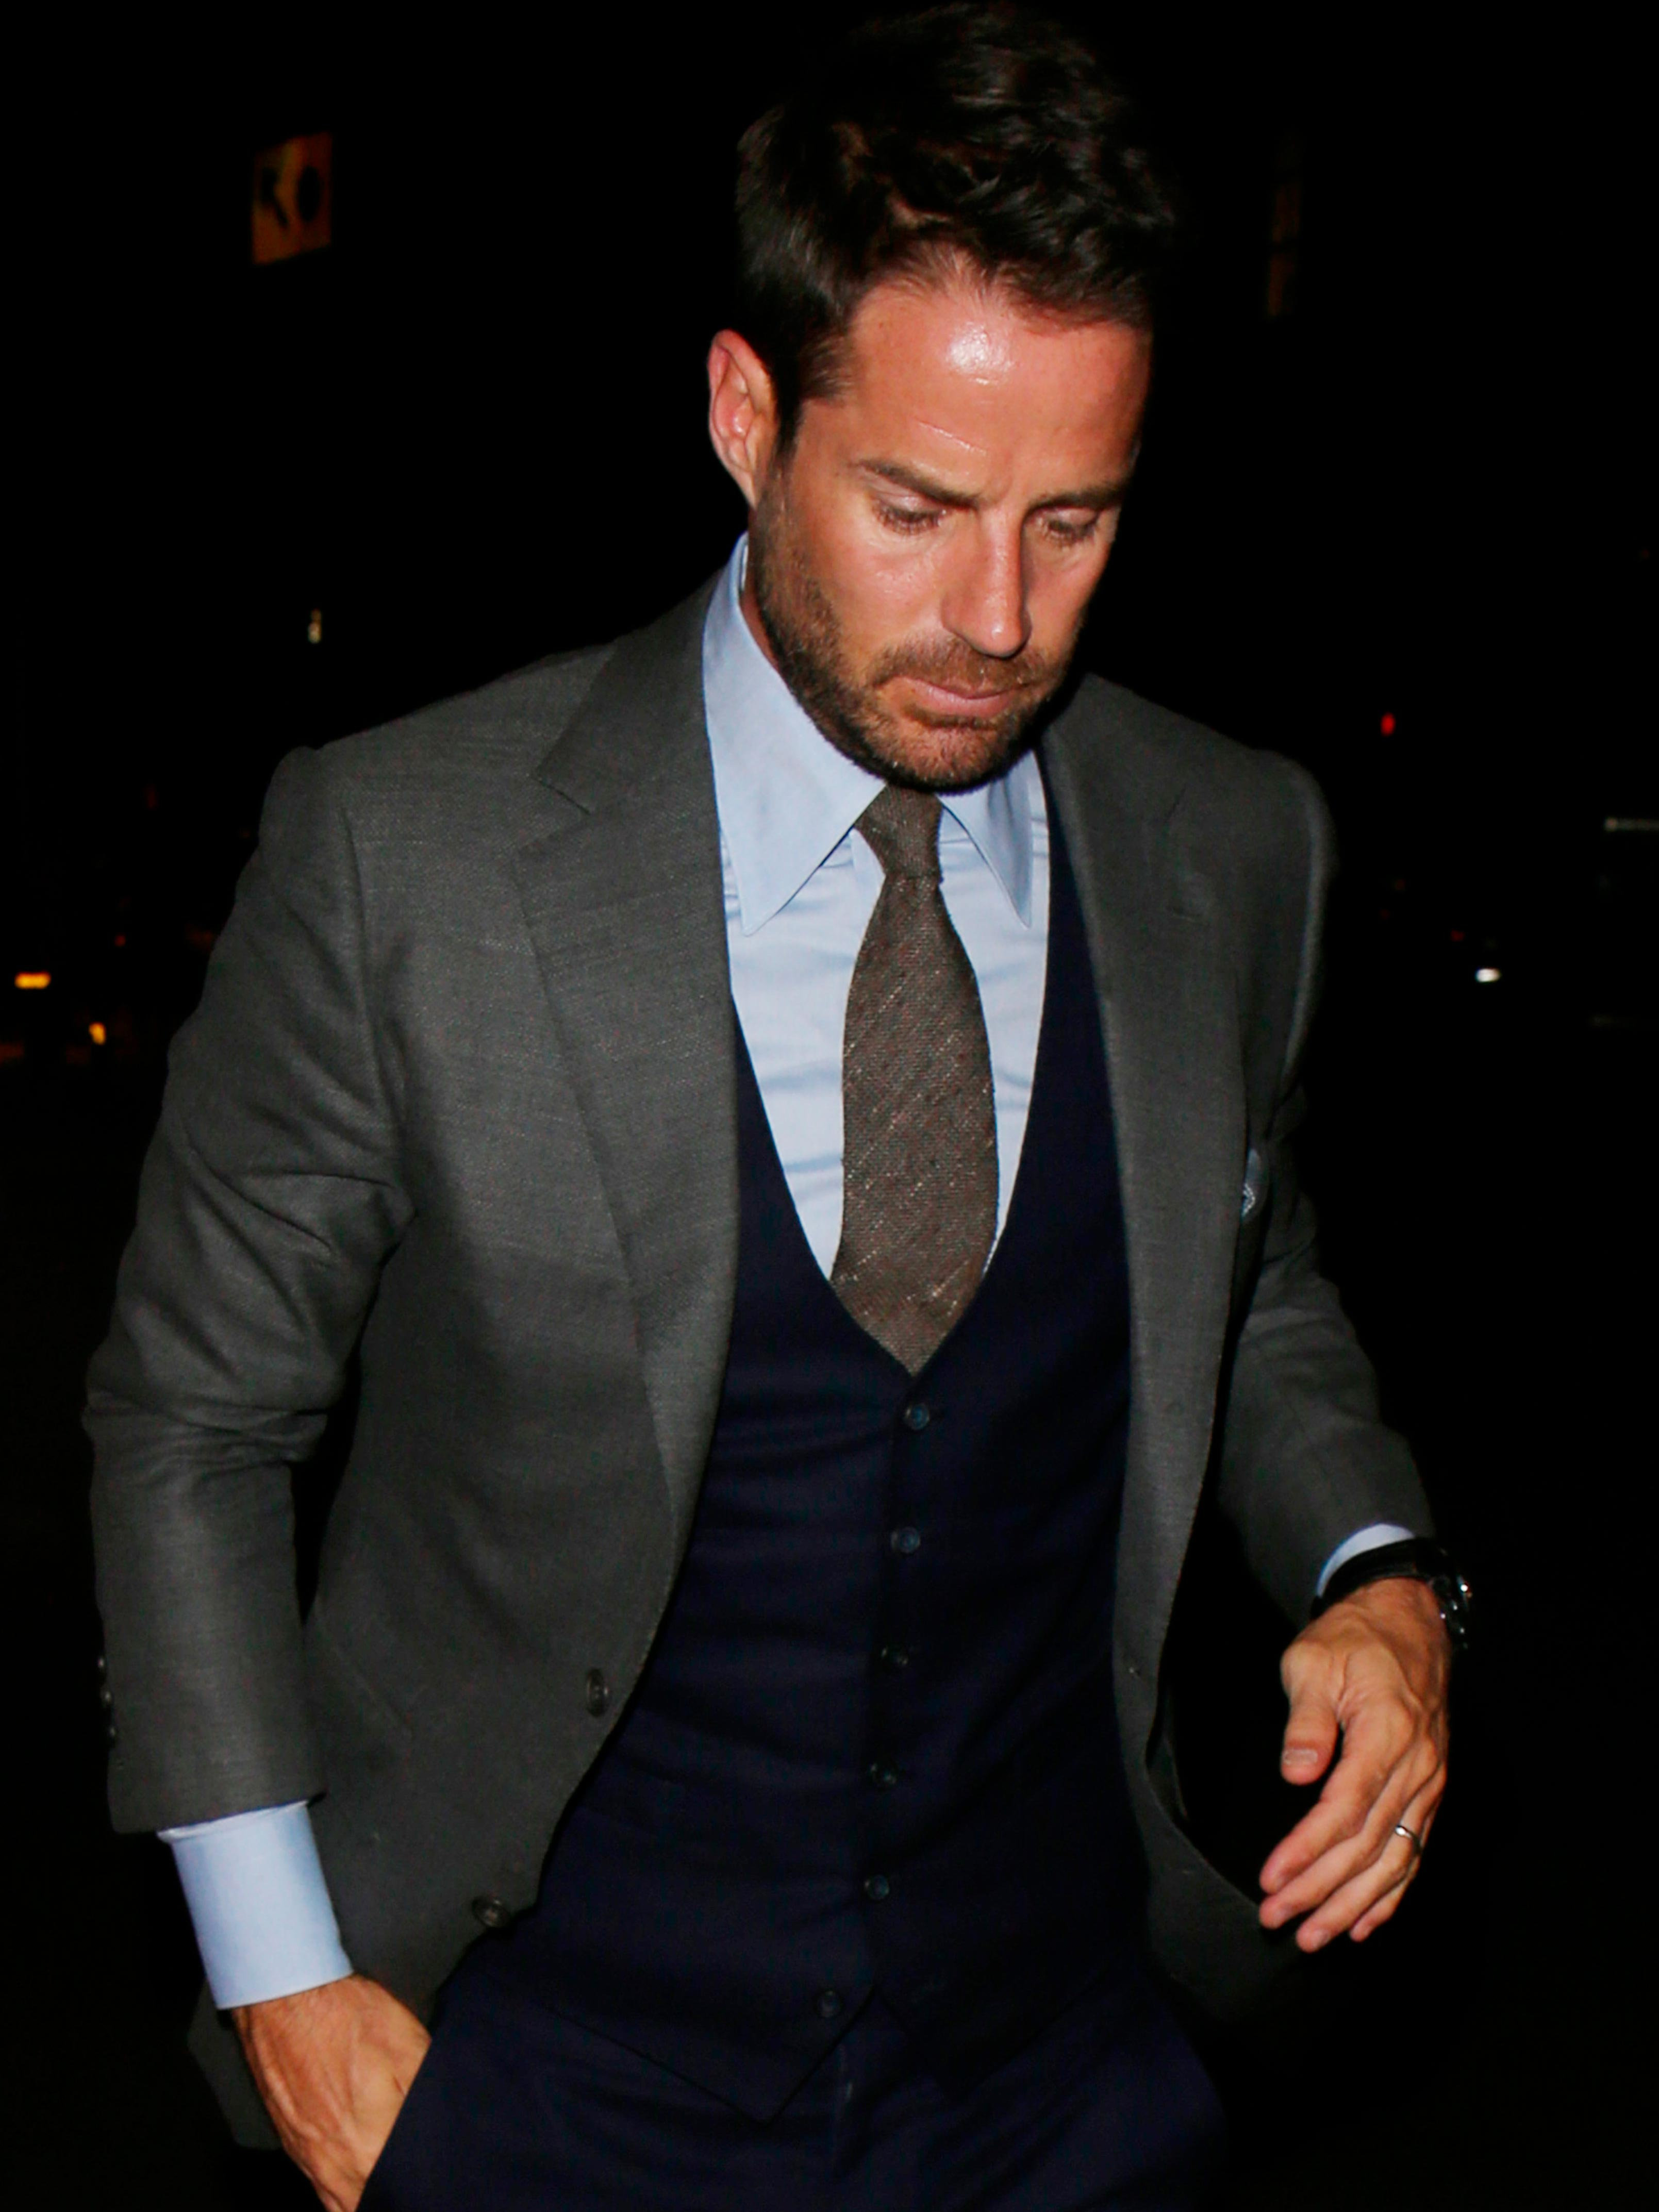 Jamie Redknapp seen without his wedding ring on